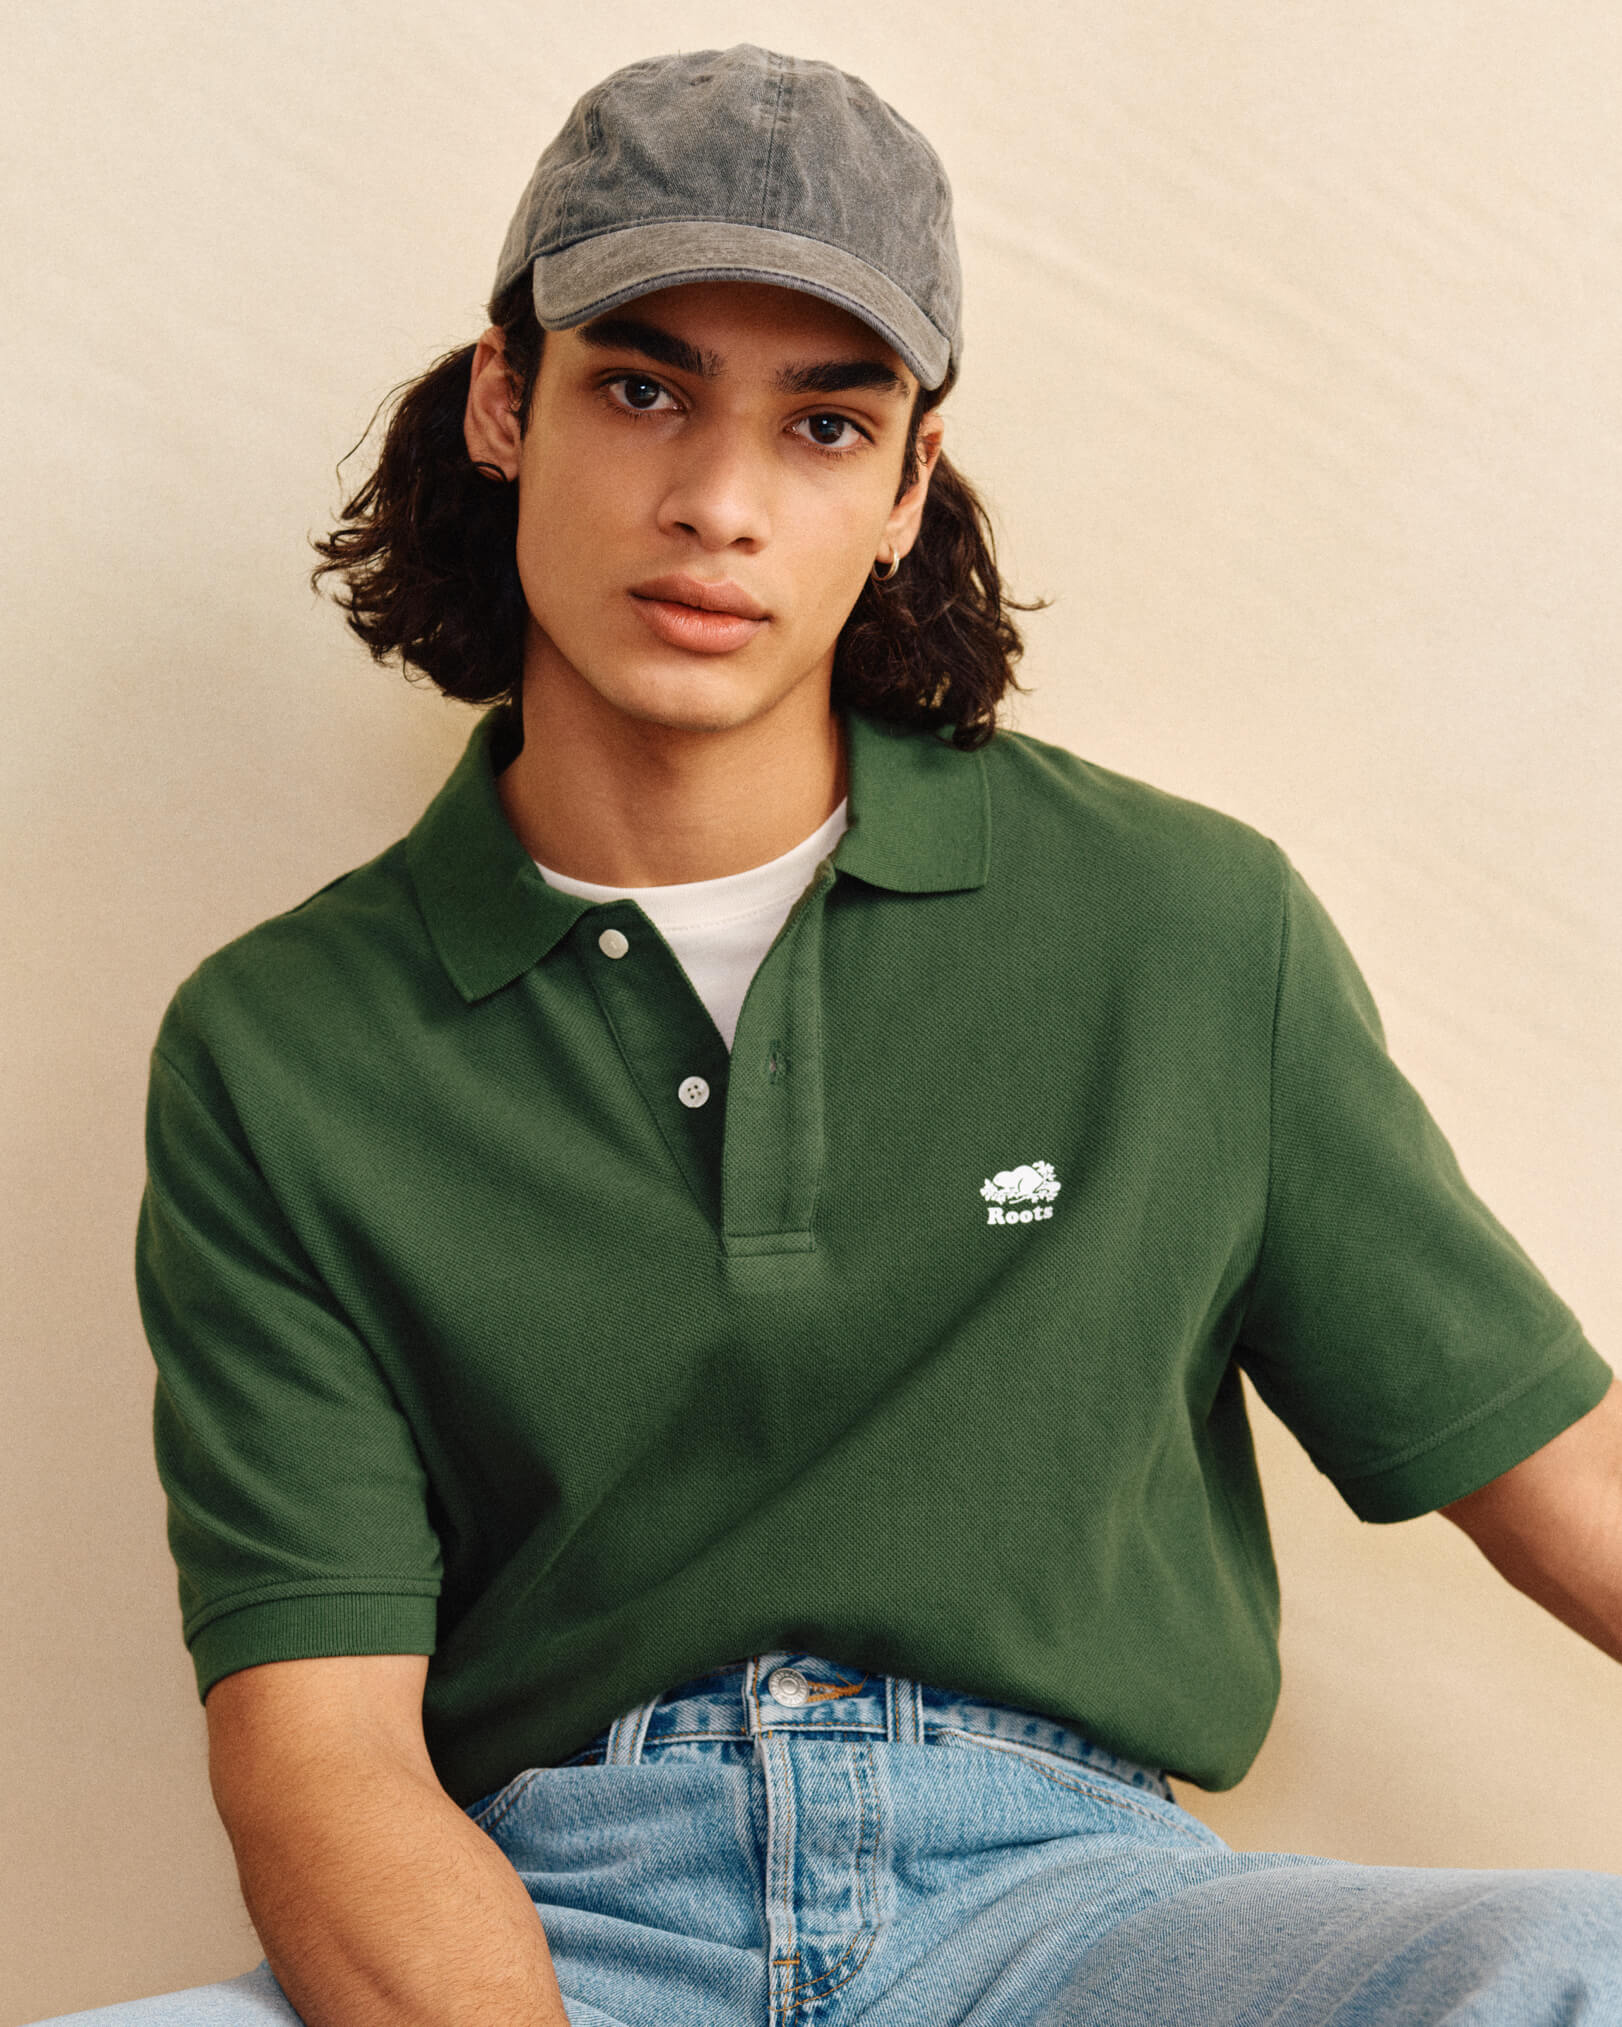 Roots-Men Shirts & Polos-Shop The Look: March Collection-O